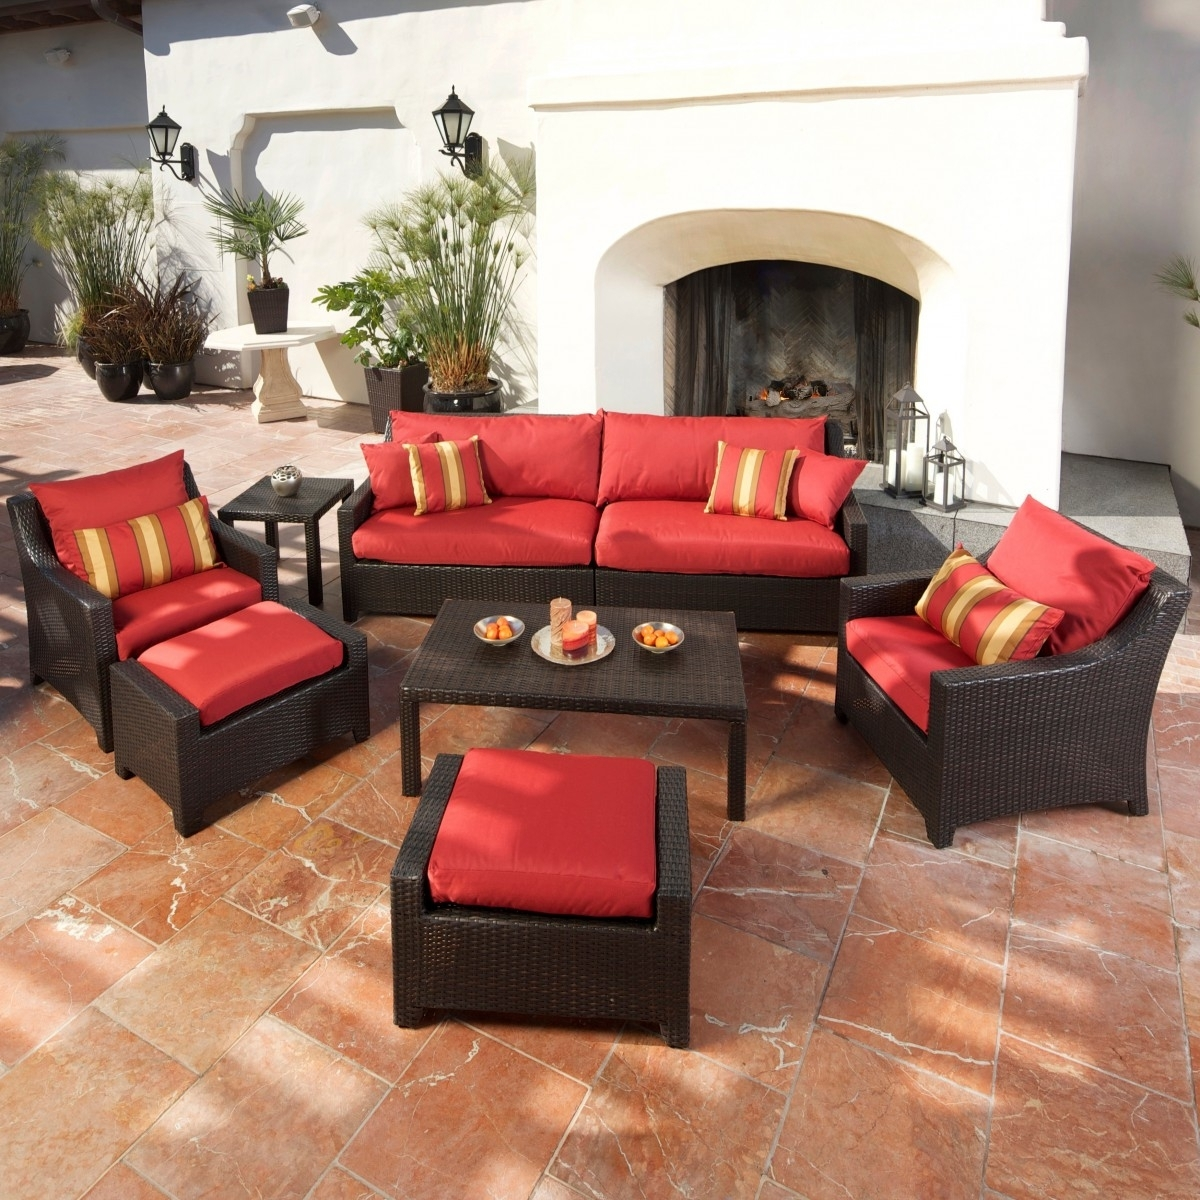 Cantina 7 Piece Sofa Seating Set With Chairs, Ottomans, Side Table Throughout Recent Patio Conversation Sets With Ottomans (View 8 of 20)